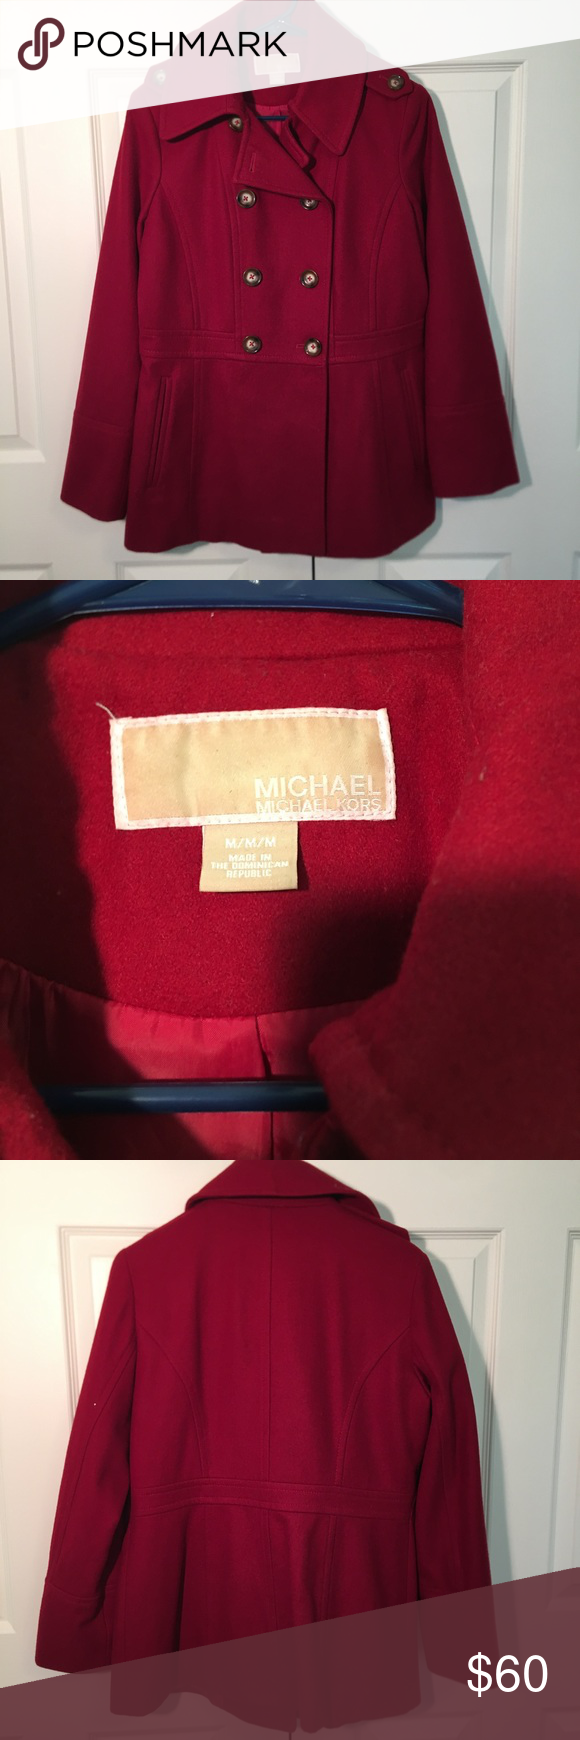 c6962ceb1d30 Red Michael Kors Wool Pea Coat This peacoat is beautifully tailored and  perfect for winter! Barely worn. I bundle